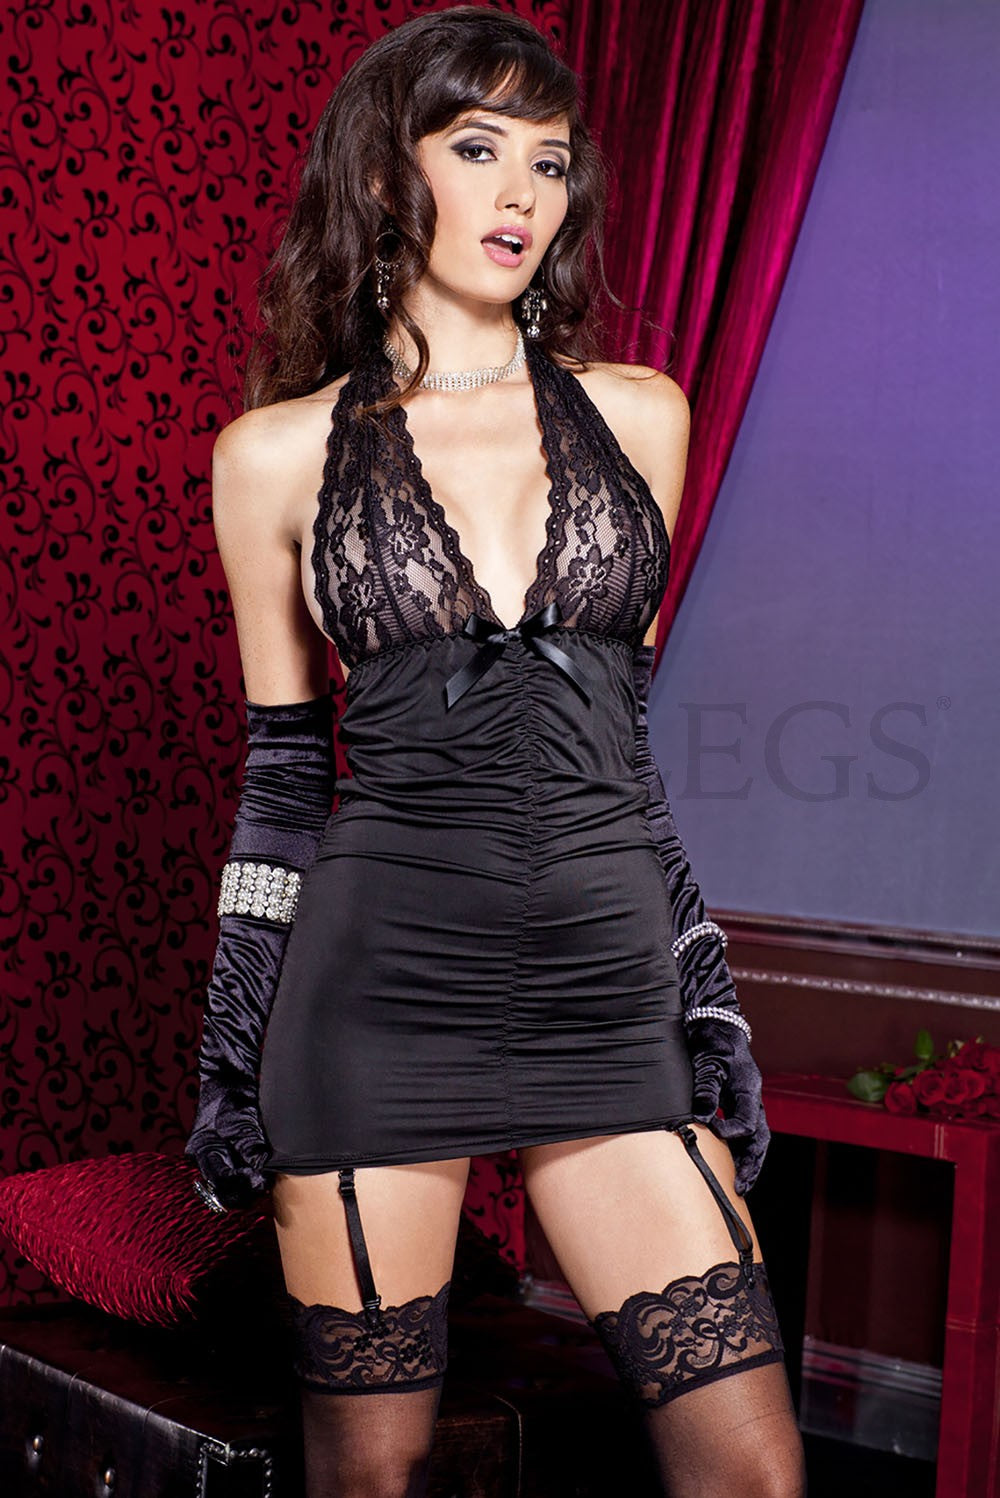 Music Legs Spandex ruched garter dress with lace halter neck